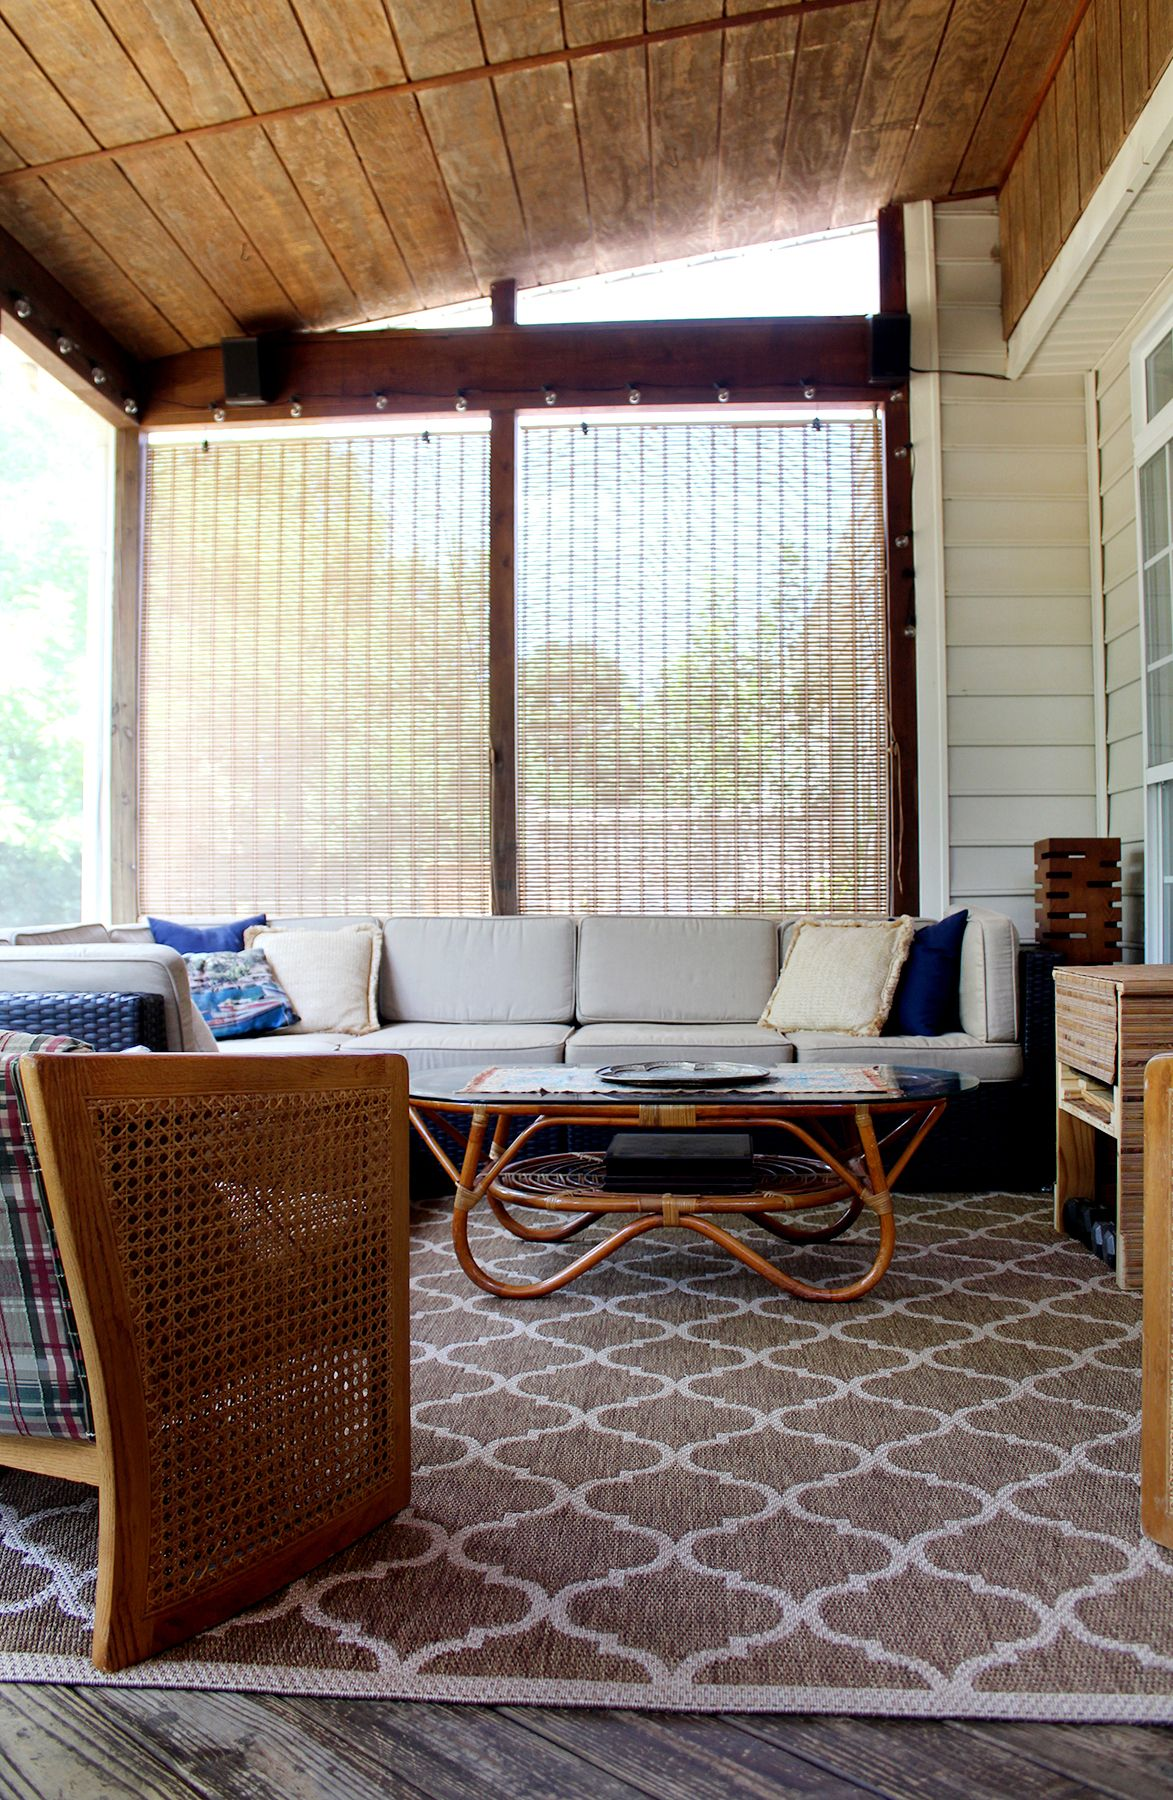 Screened porch with sectional and vintage coffee table back porches decorating your home diy also best under diys  projects images in rh pinterest